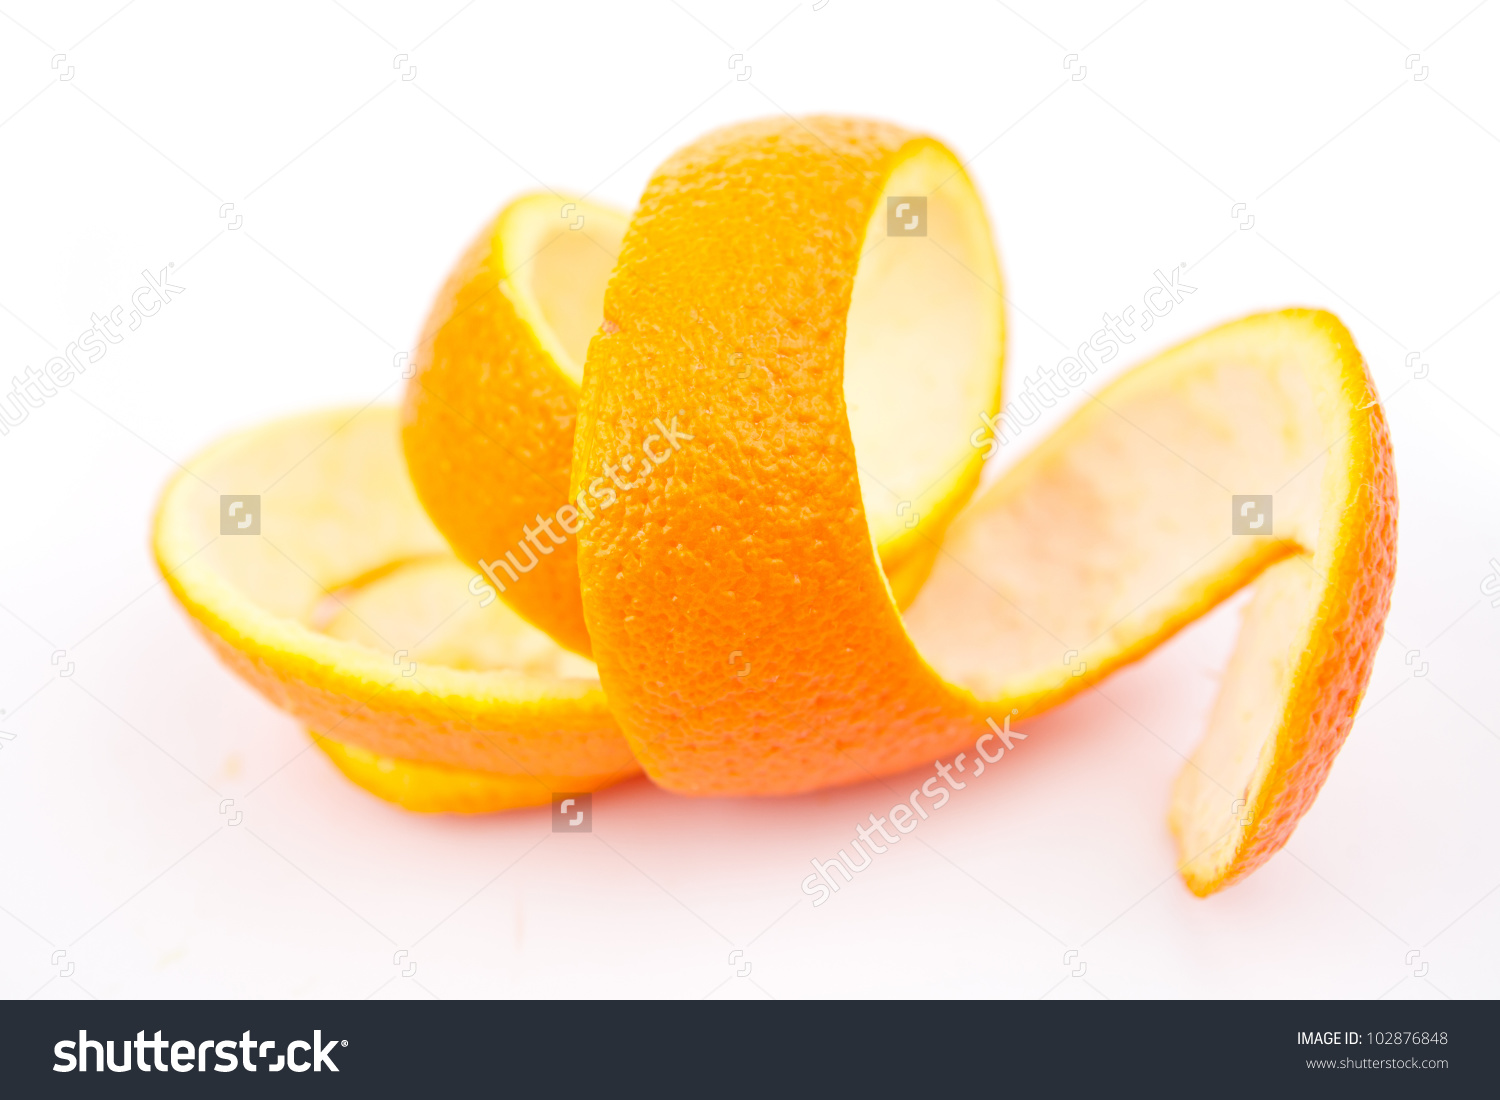 Orange Peel Skin Stock Photos, Images, & Pictures.